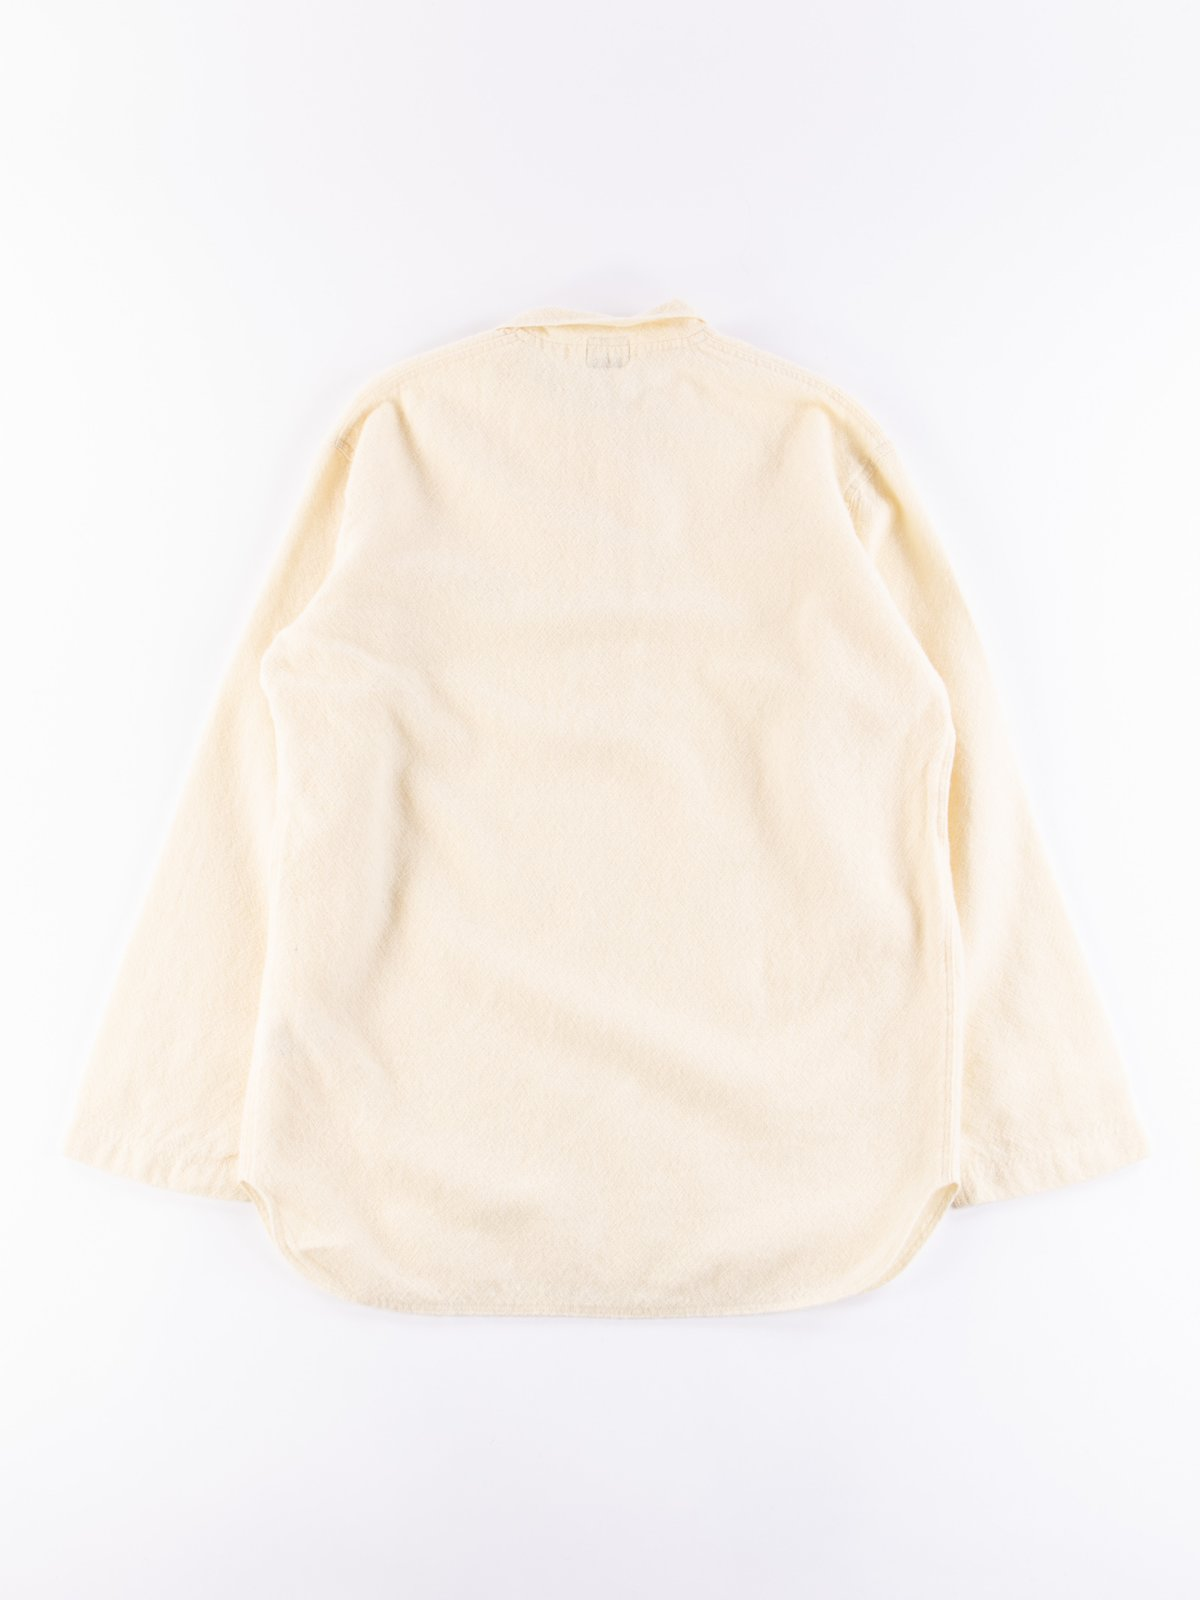 Cream Weavers Stock Pullover Tail Shirt - Image 5